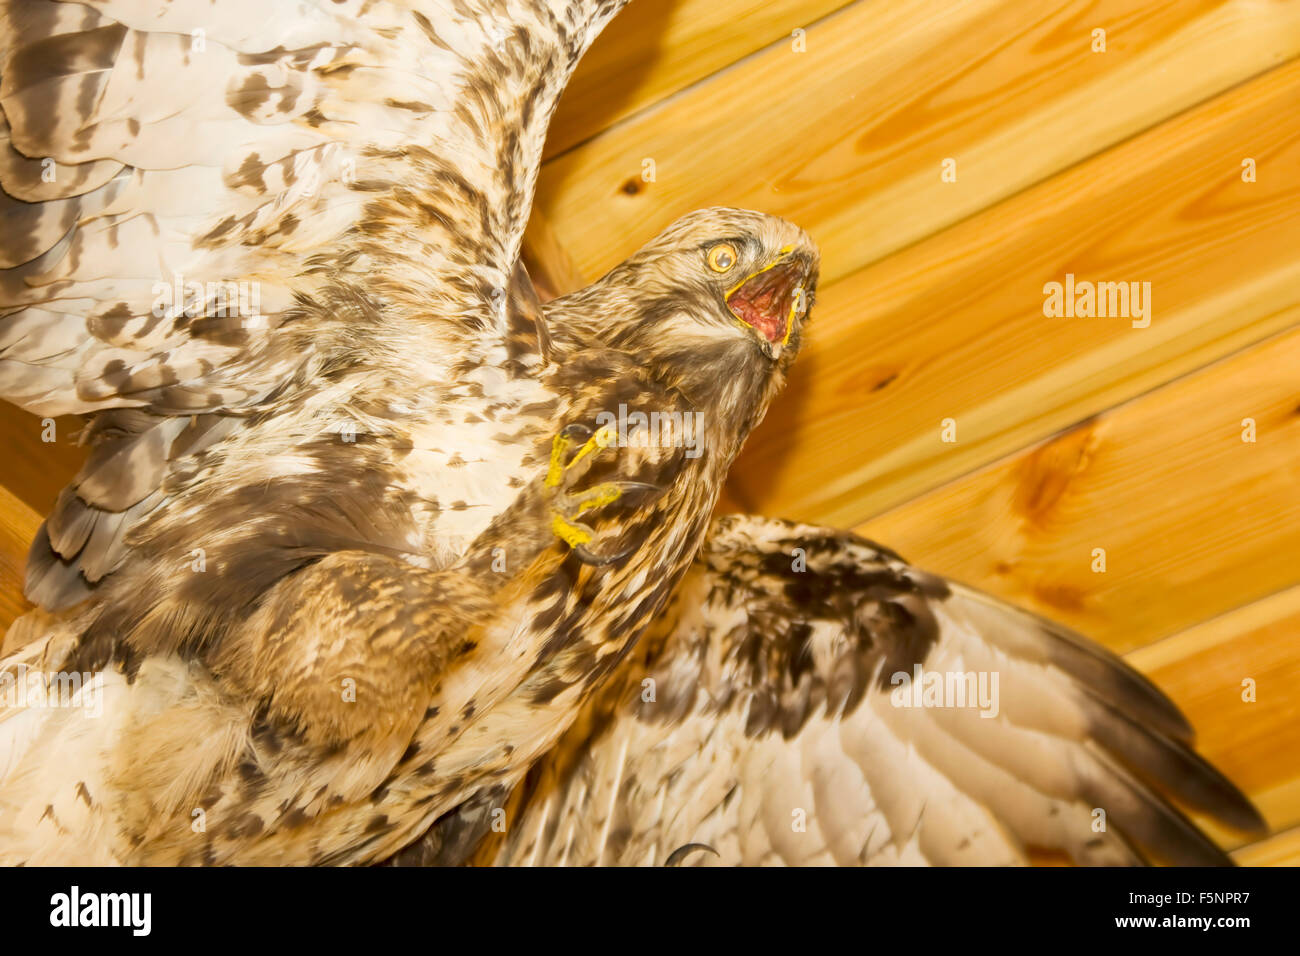 Home Of The Hawk Stock Photos Home Of The Hawk Stock Images Alamy